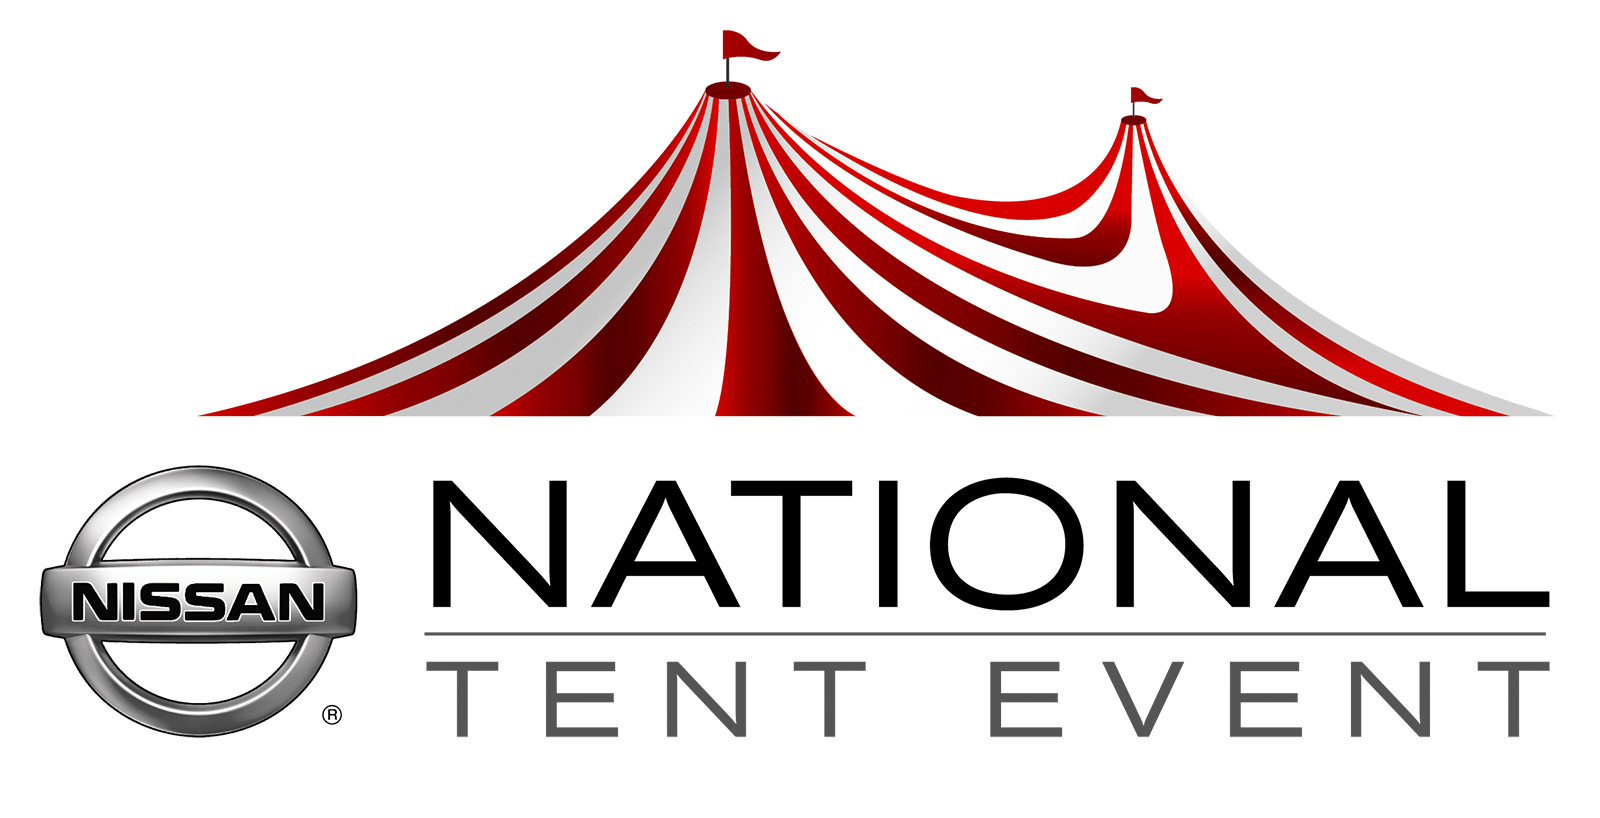 Party Tent Clipart.